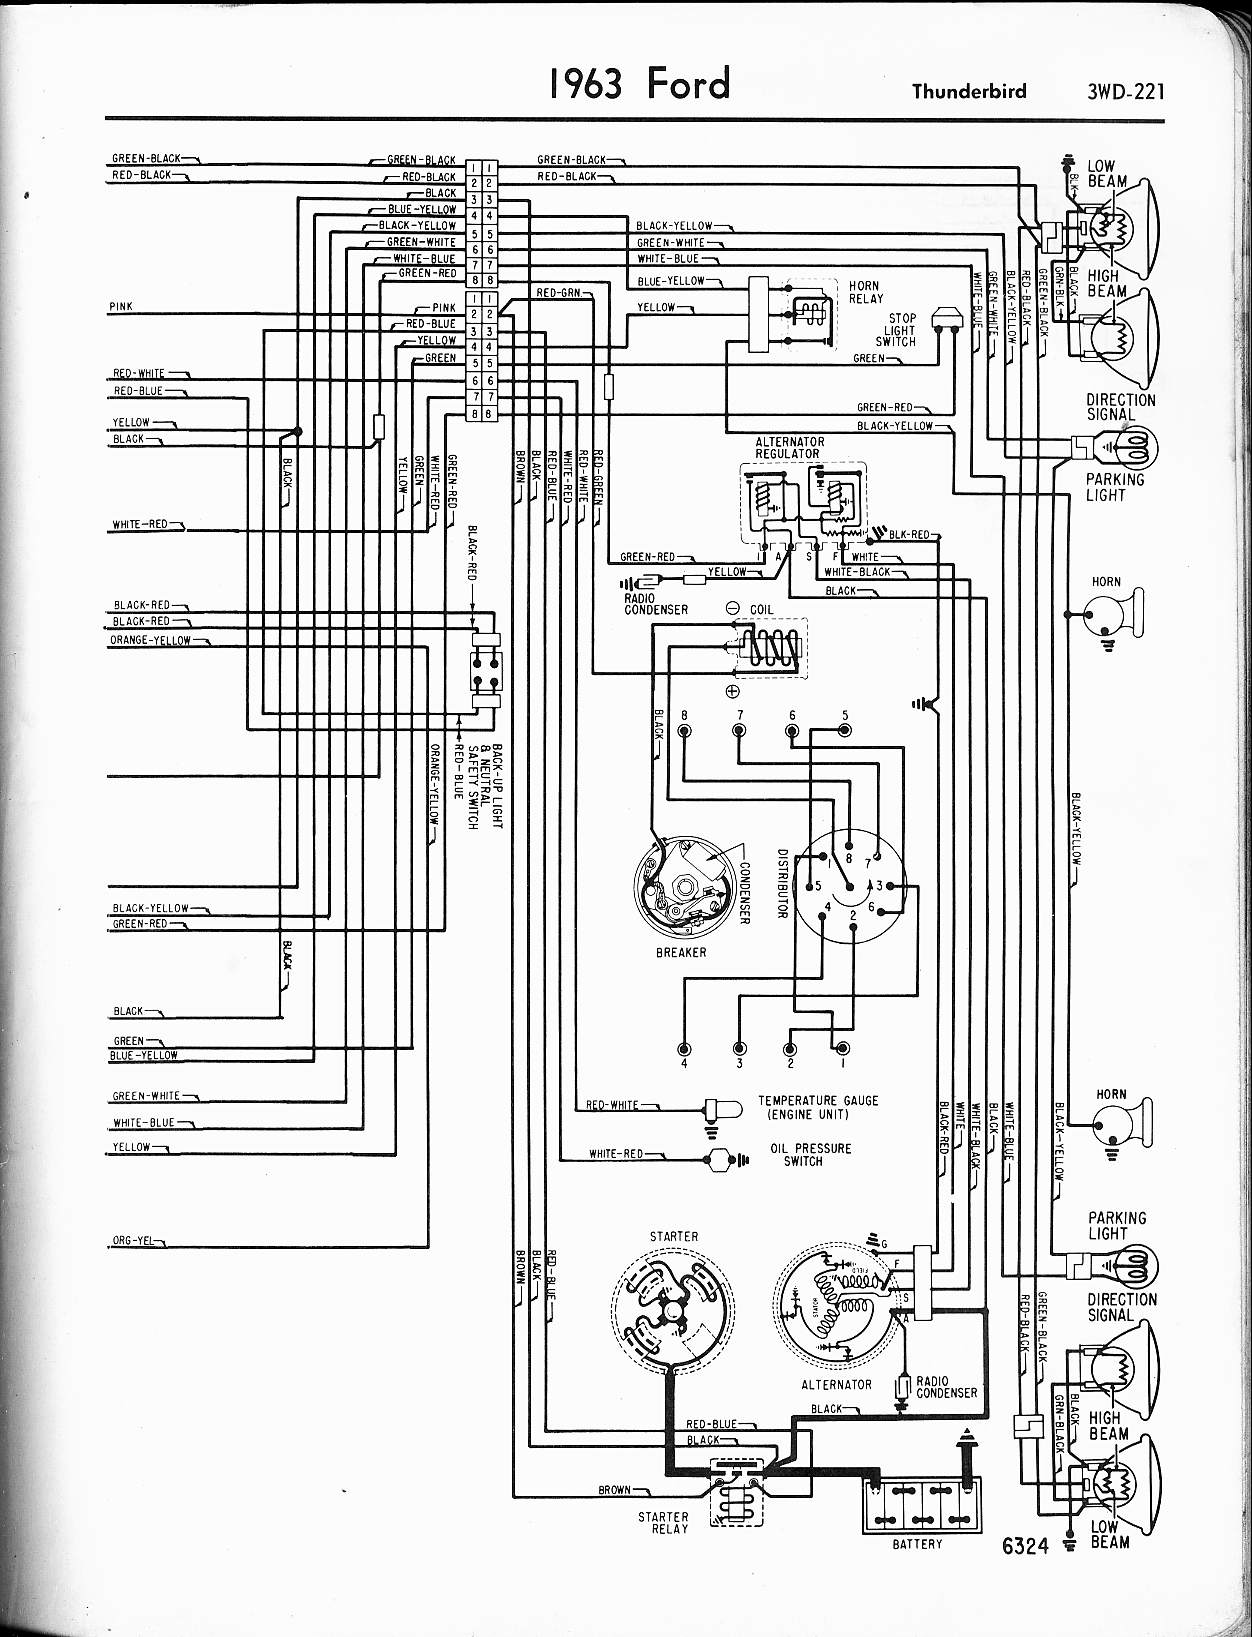 1956 thunderbird wiring schematic just wiring data  57 65 ford wiring diagrams 69 mustang wiring 1956 thunderbird wiring schematic